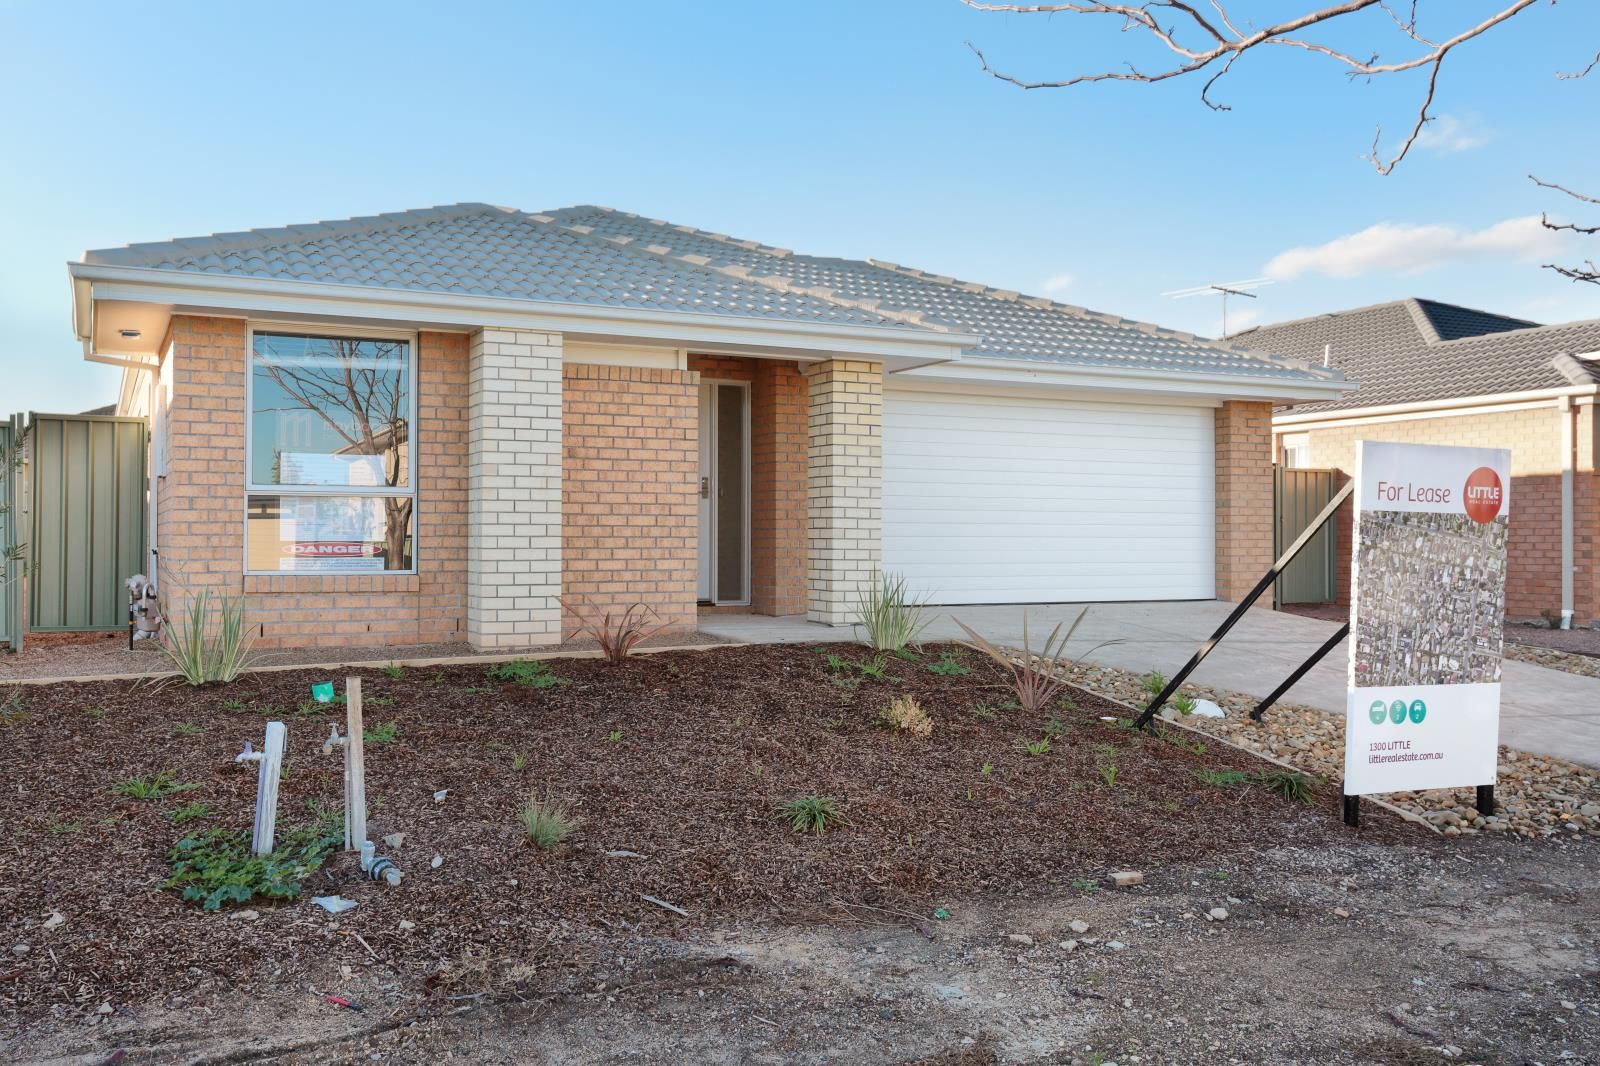 5 Langley Avenue (Lot 1416), Wyndham Vale VIC 3024, Image 0